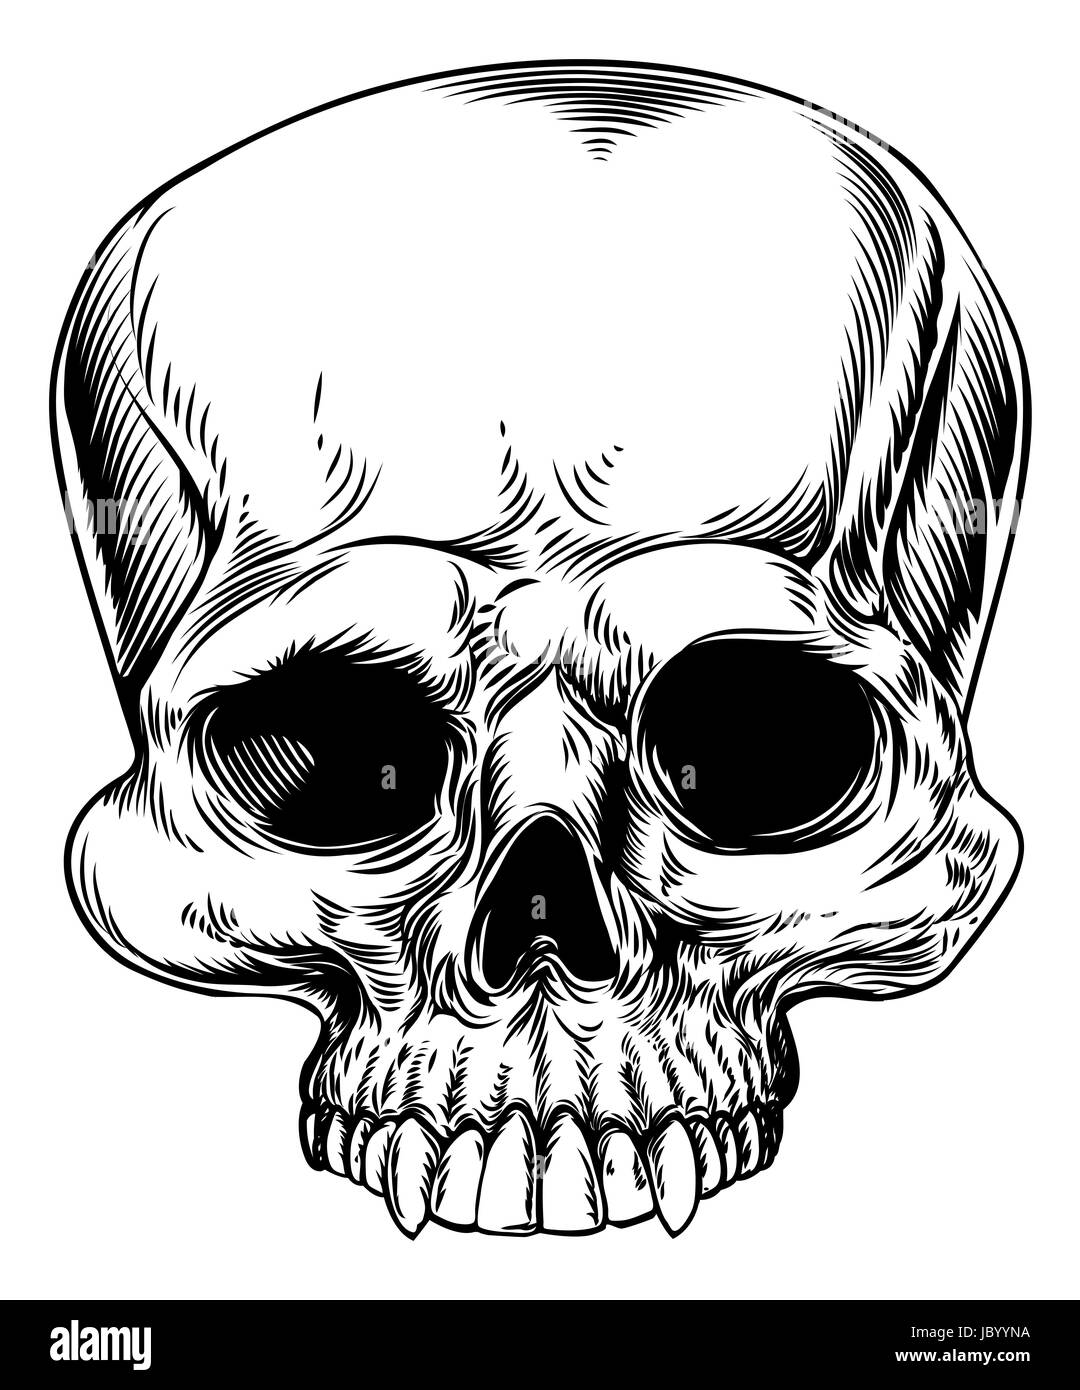 a drawing of a human skull in a etched woodcut style